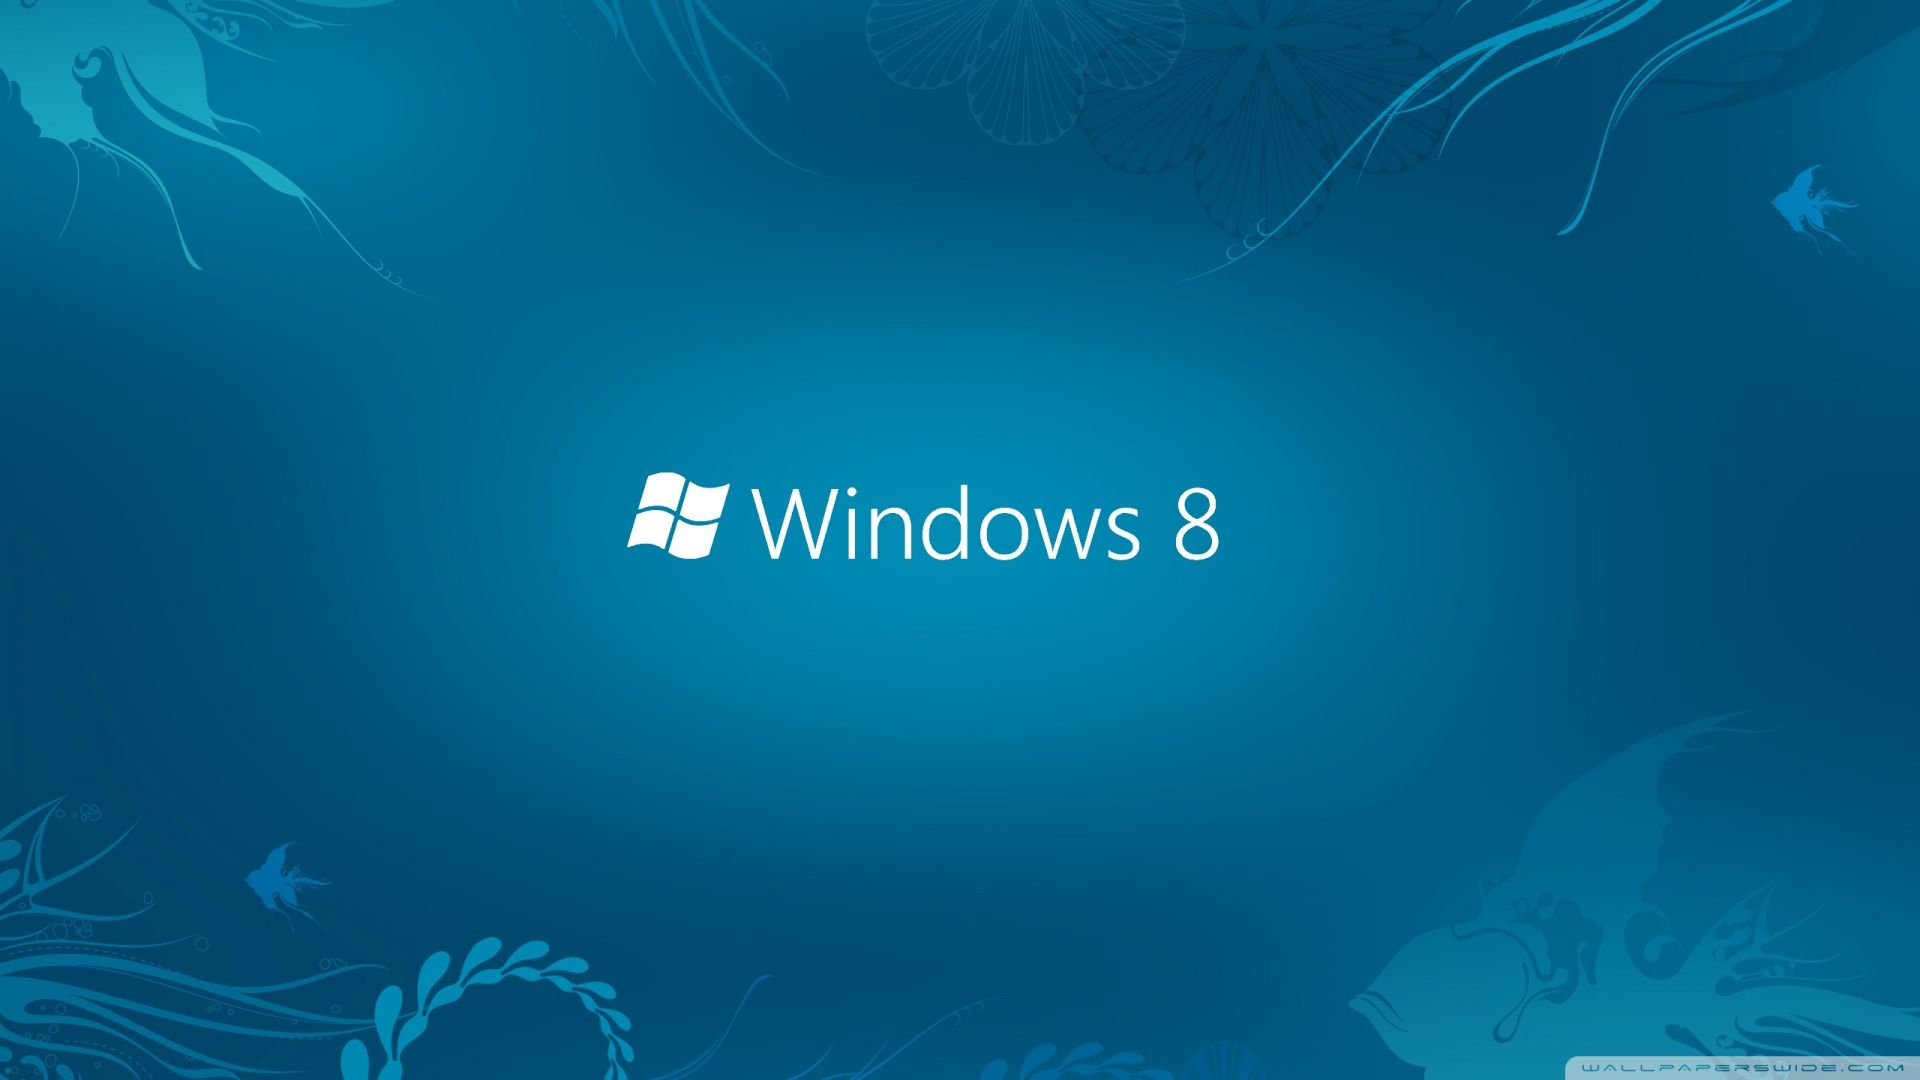 Windows Official Wallpapers Hd Group